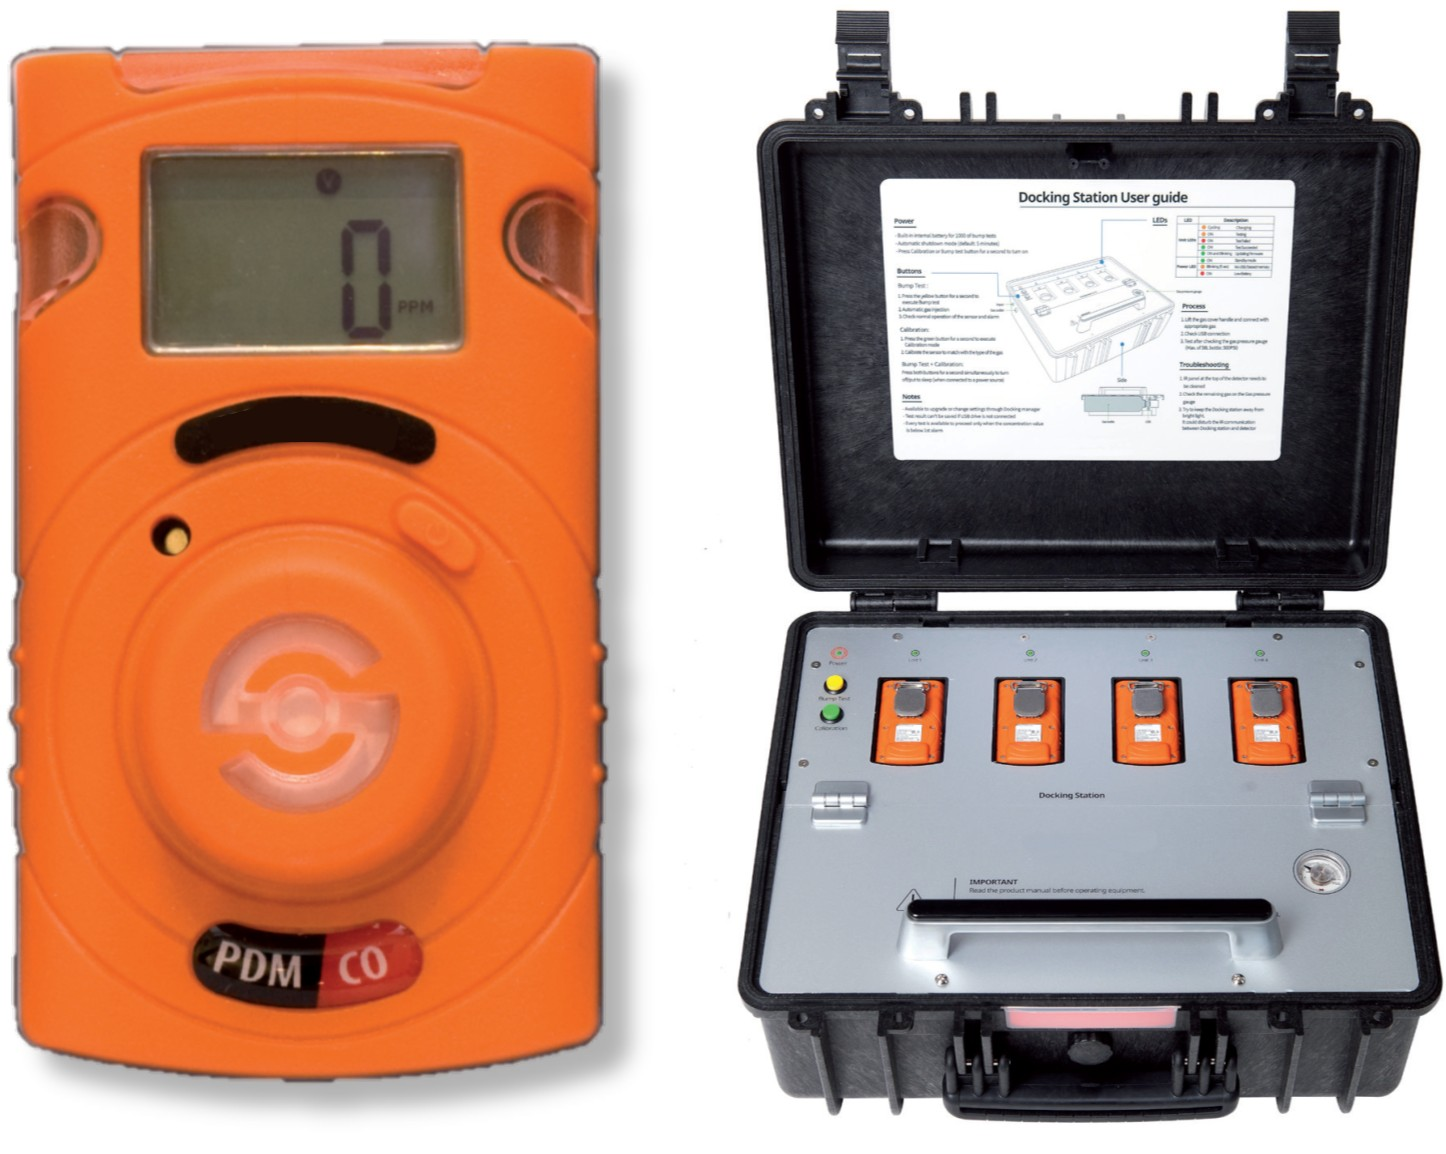 Portable Single Gas Detector (Alat Pendeteksi Gas Tunggal)